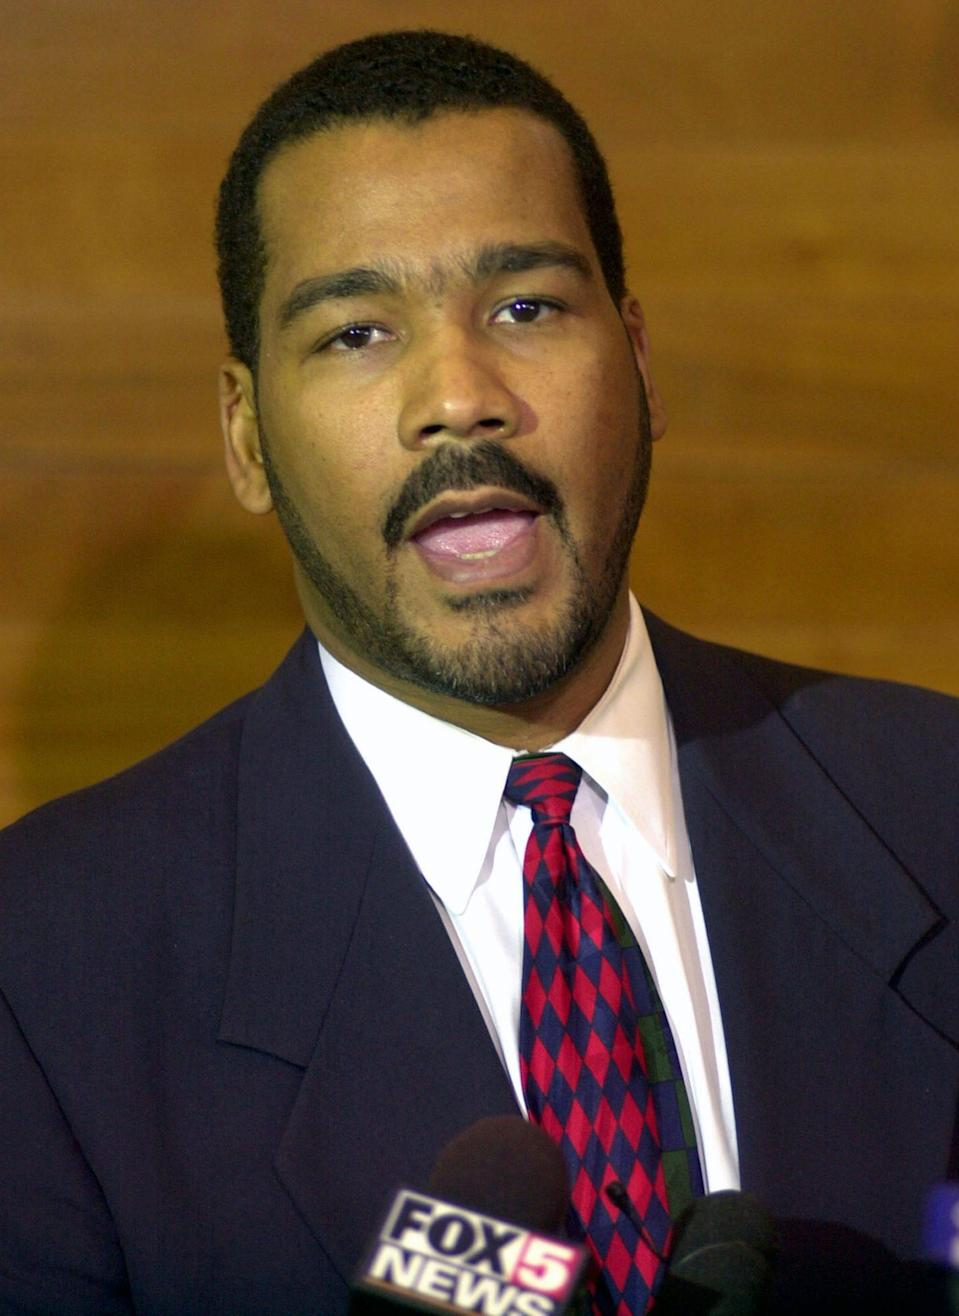 <p>In 2002, King's own son, Dexter Scott King, stepped into his father's shoes for <em>The Rosa Parks </em>story. </p> <p>He portrayed him again in in the 1999 educational film <em>Our Friend, Martin, </em>voicing his father at 34 years old. The film was nominated for an Emmy award in 1999 for outstanding animated program. </p>